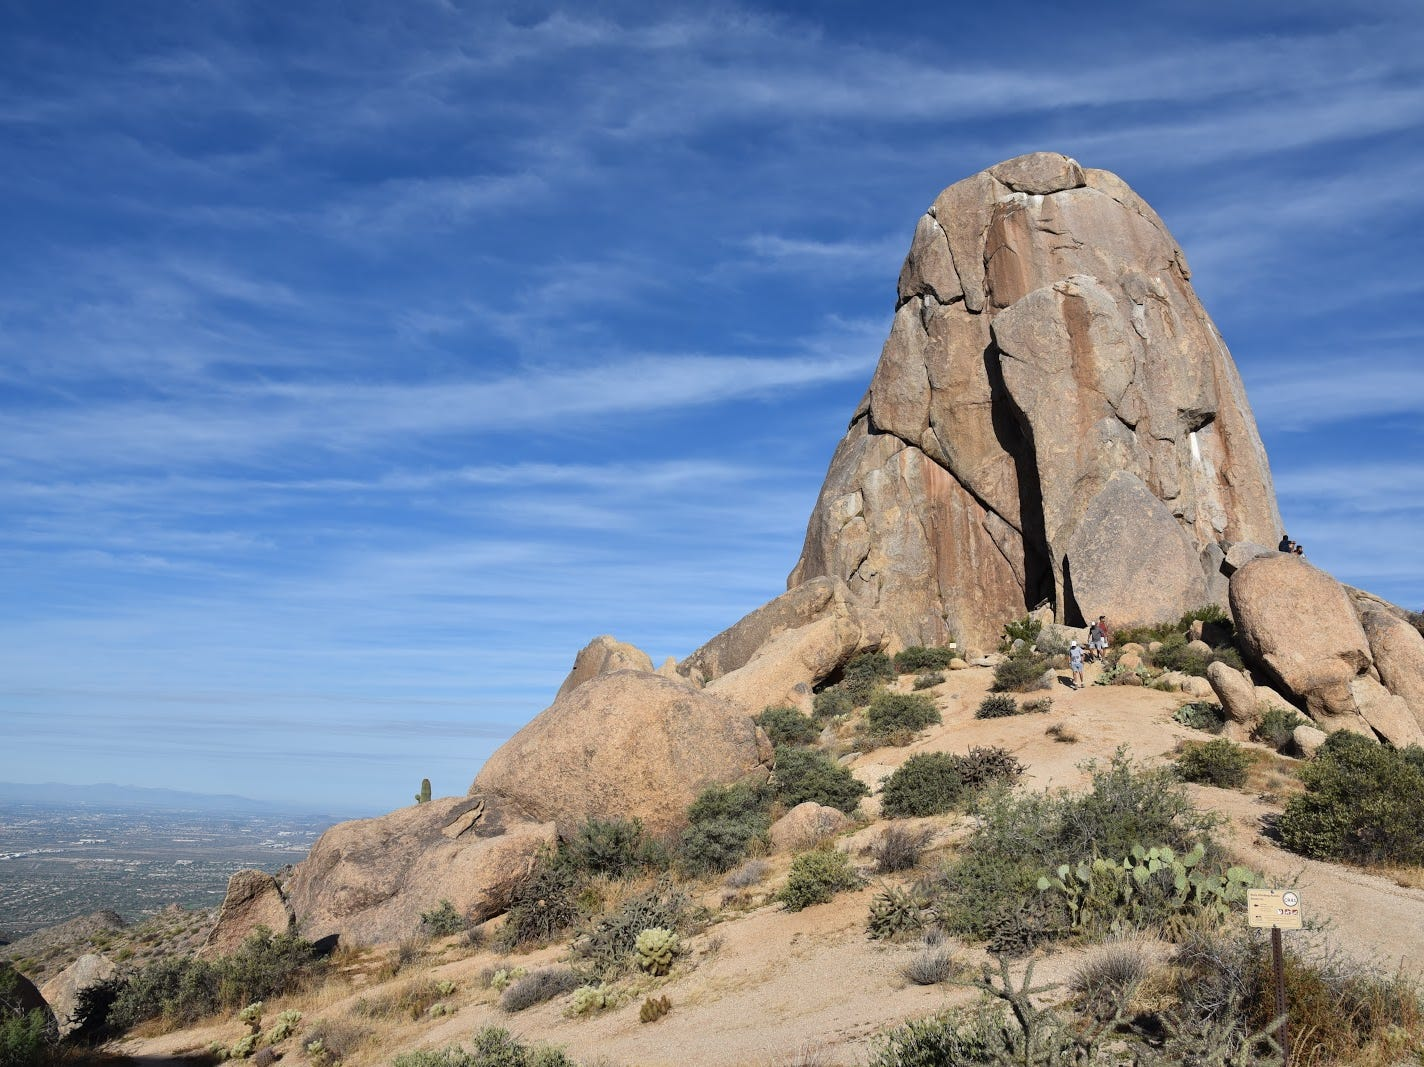 Tom's Thumb is the most recognizable feature in Scottsdale's McDowell Sonoran Preserve.